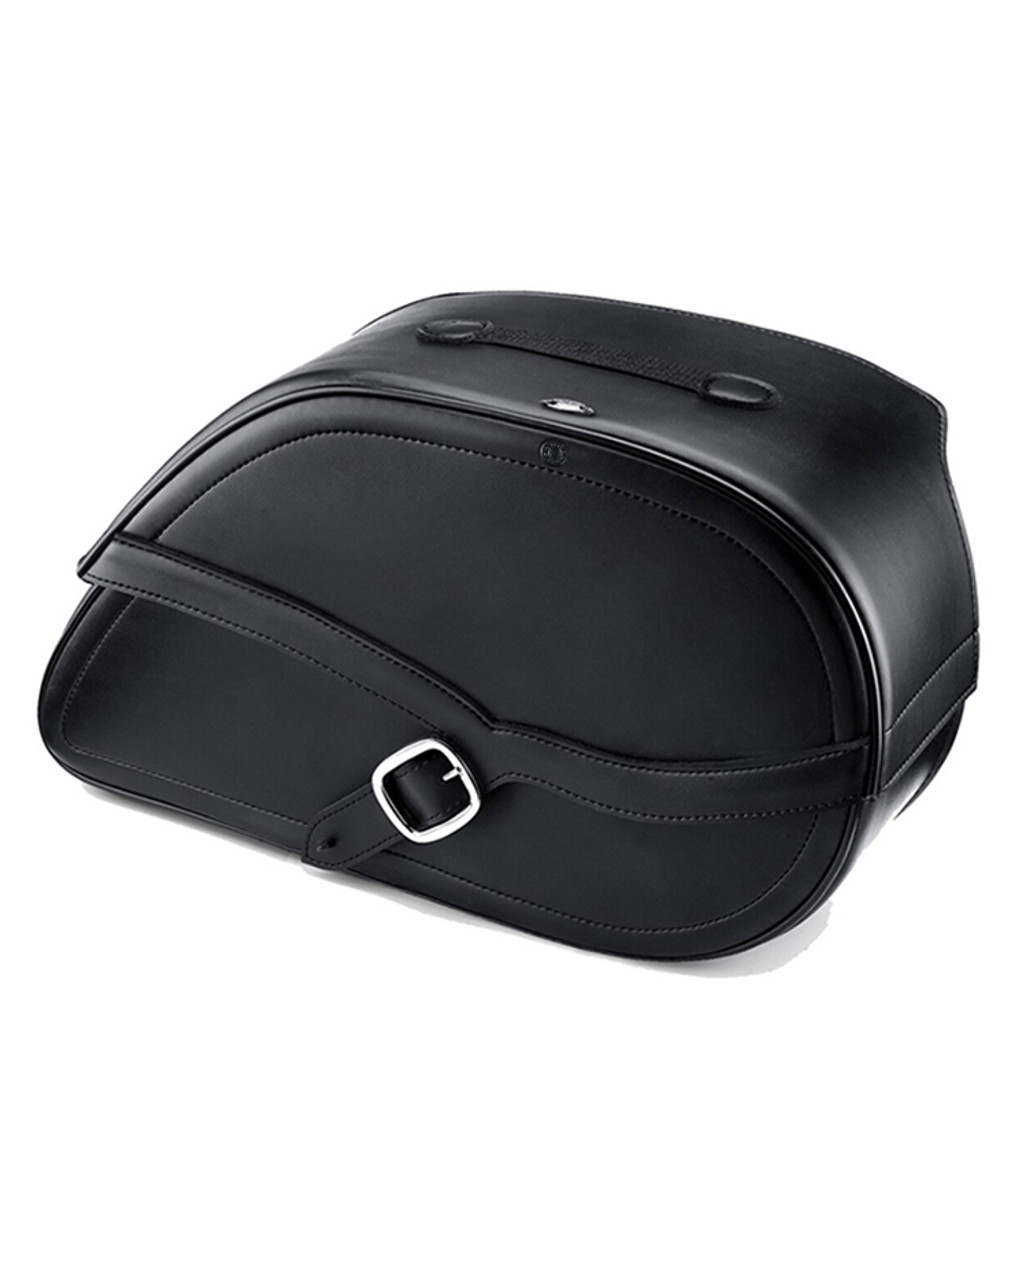 Viking Shock Cutout Armor Large Motorcycle Saddlebags For Harley Dyna Low Rider FXDL Main Bag View